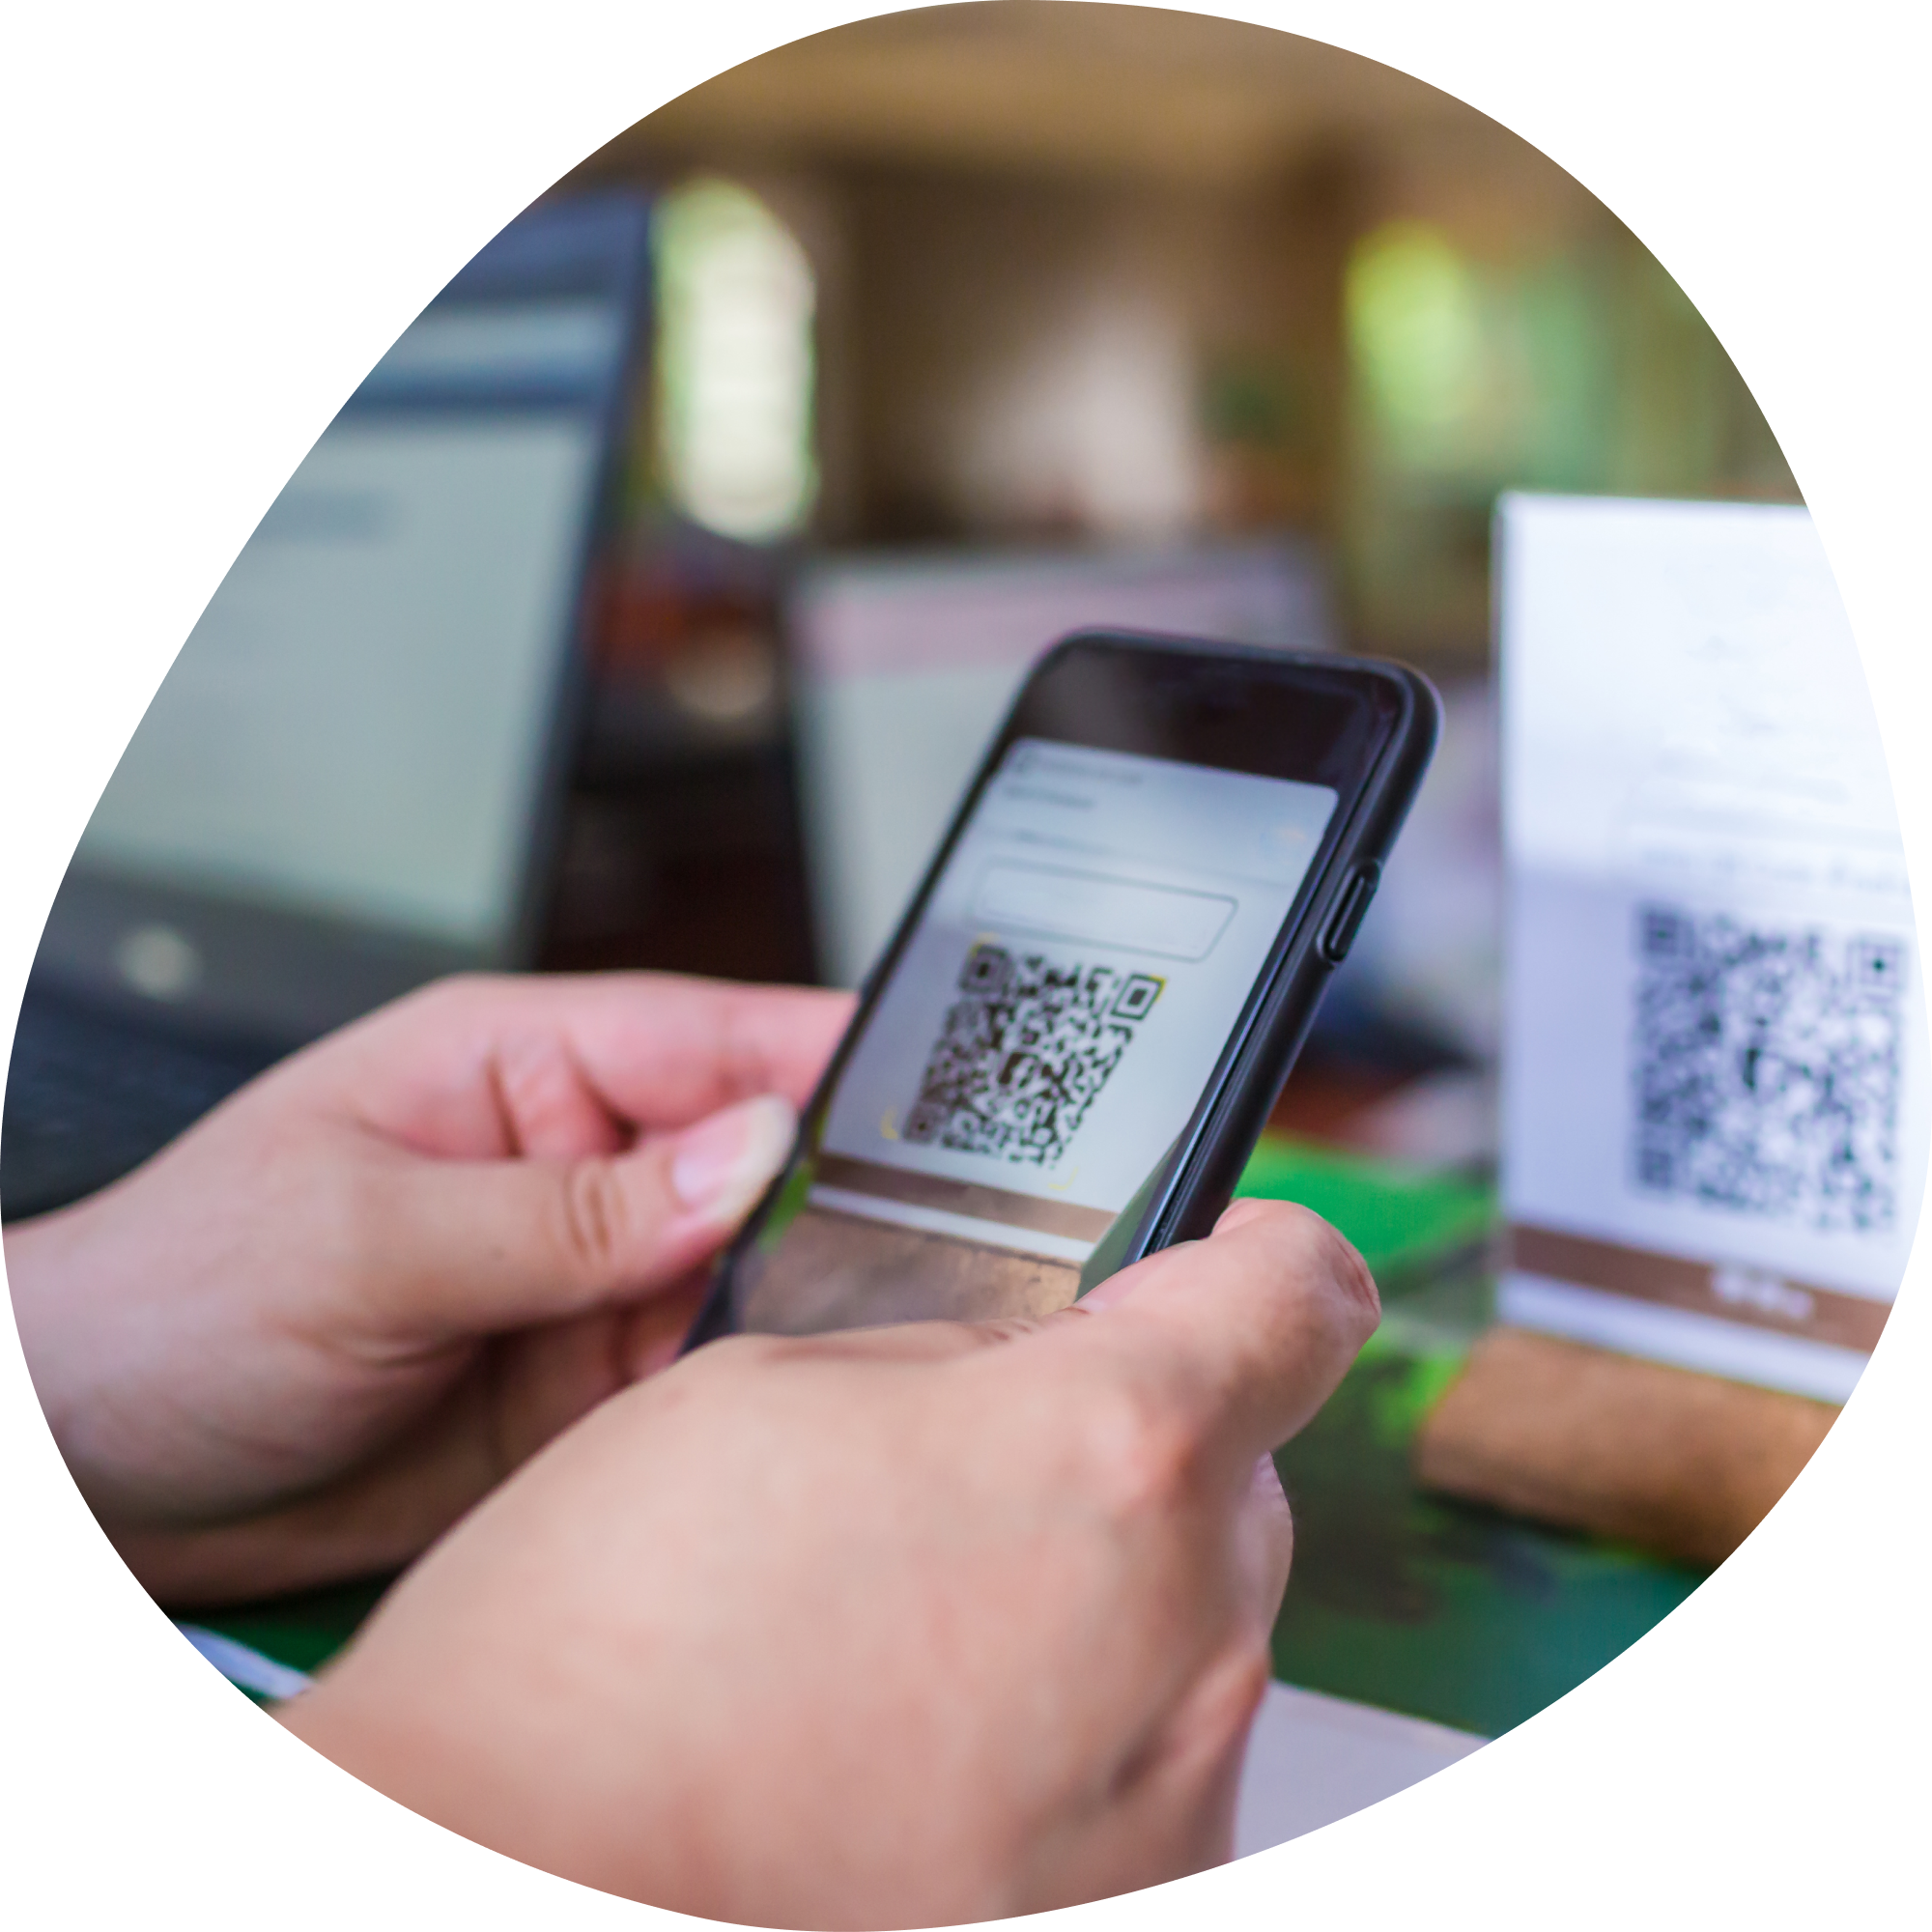 Customer scanning QR code with phone